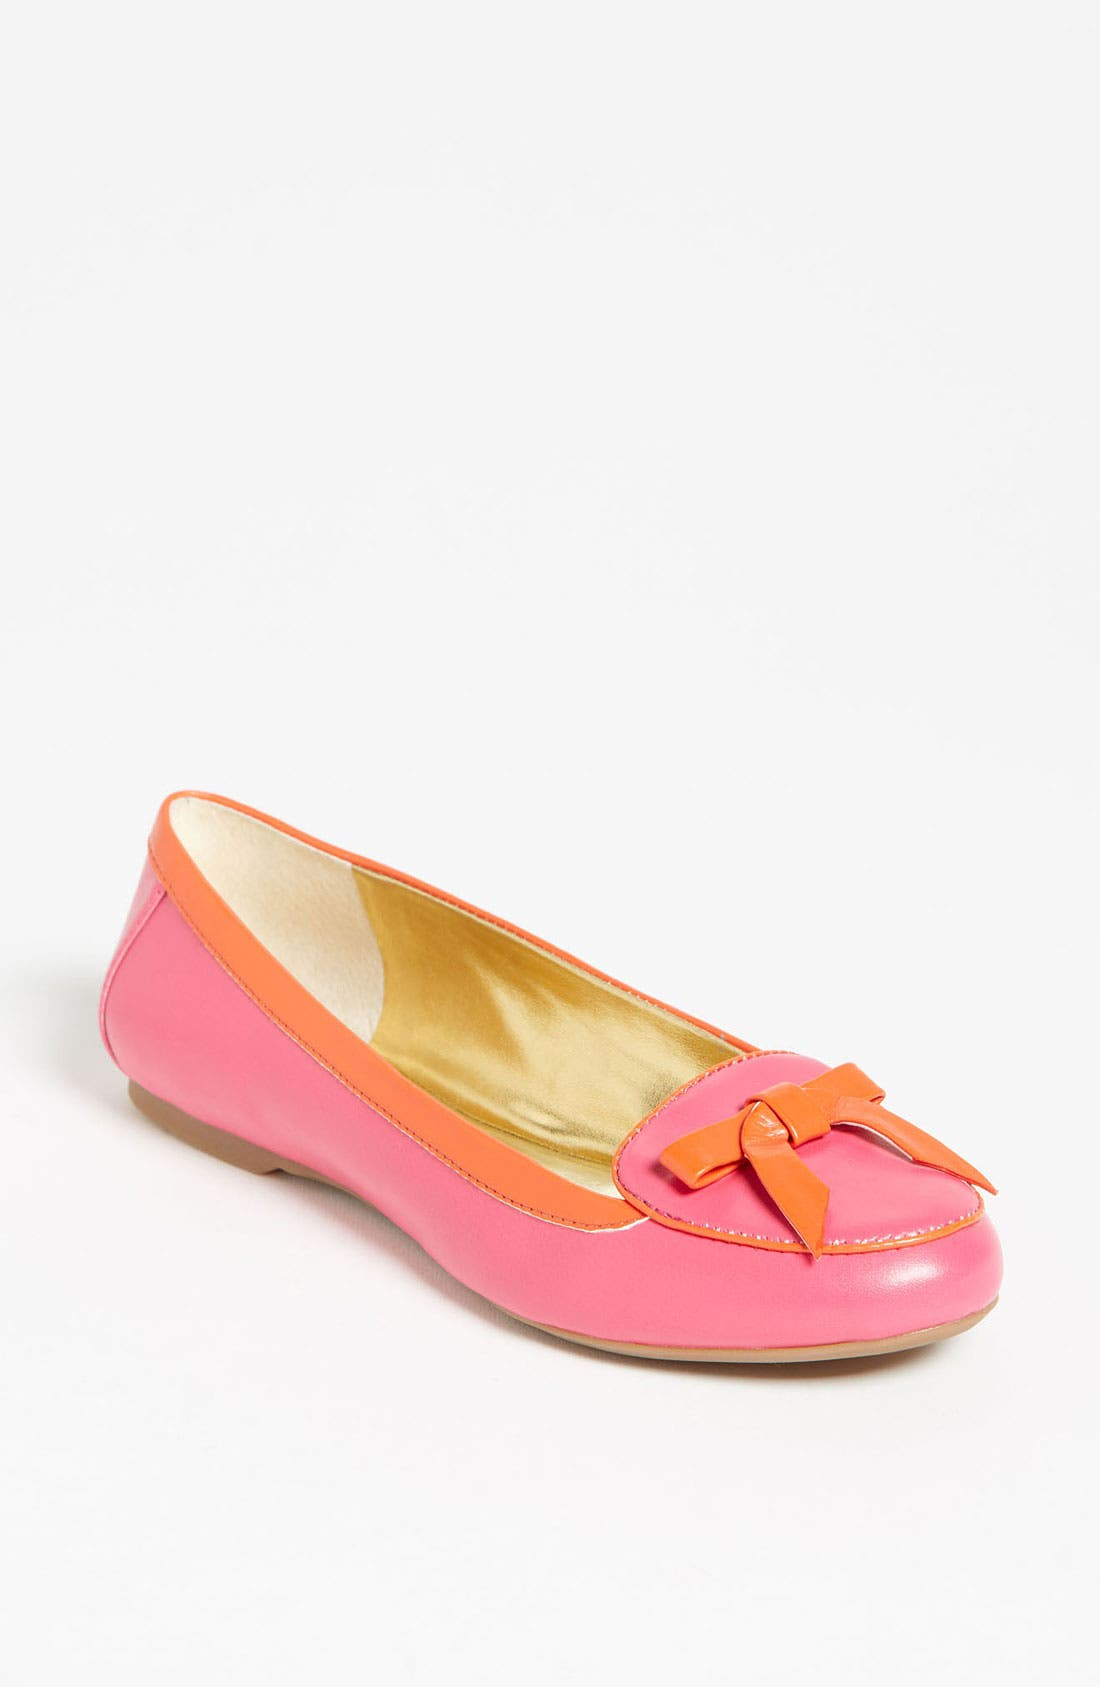 Alternate Image 1 Selected - Julianne Hough for Sole Society 'Maddi' Loafer